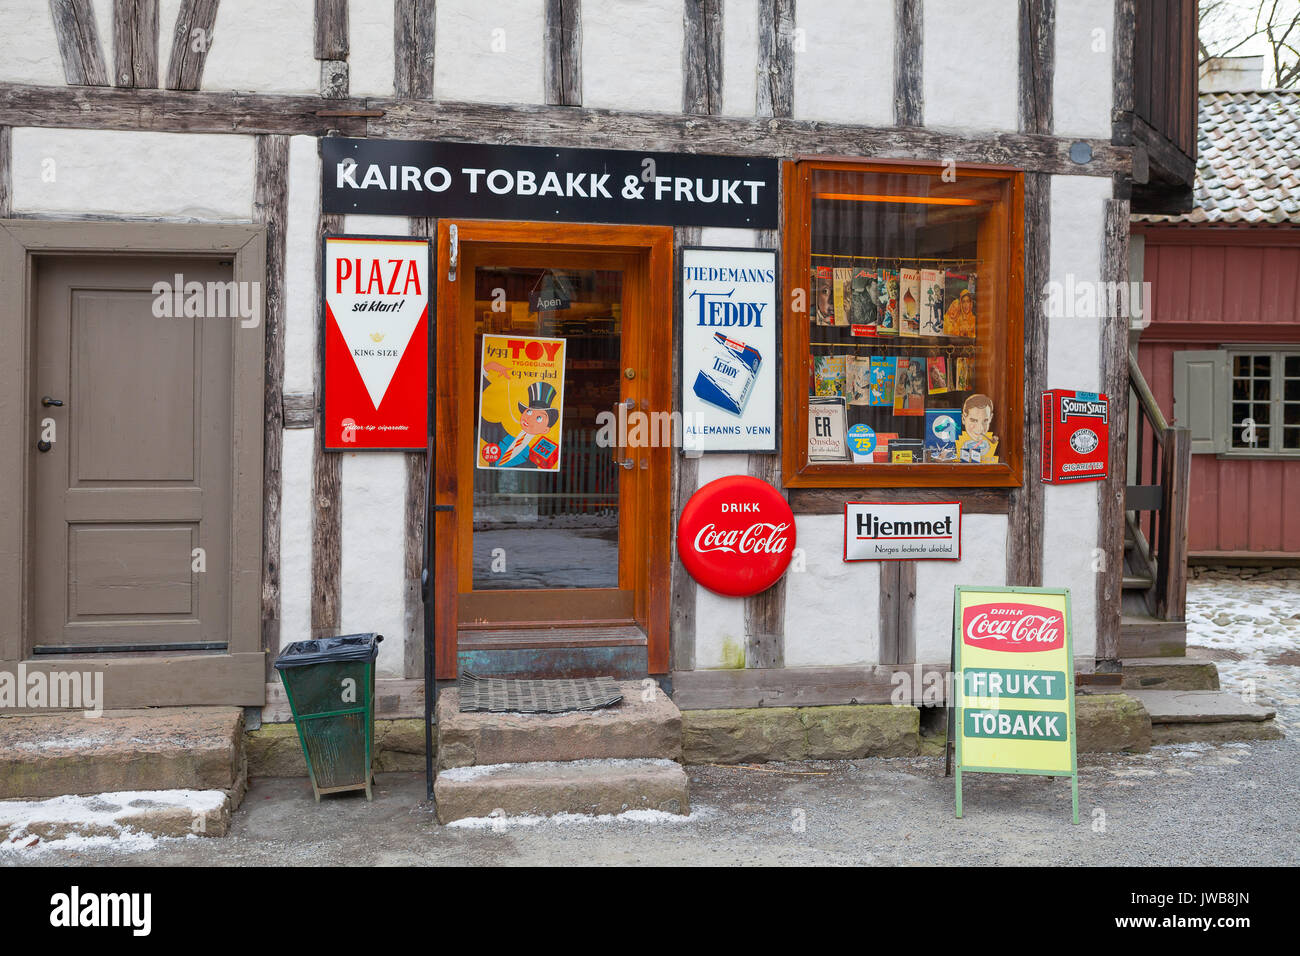 OSLO, NORWAY - 28 FEB 2016: Vintage Norwegian town food shop